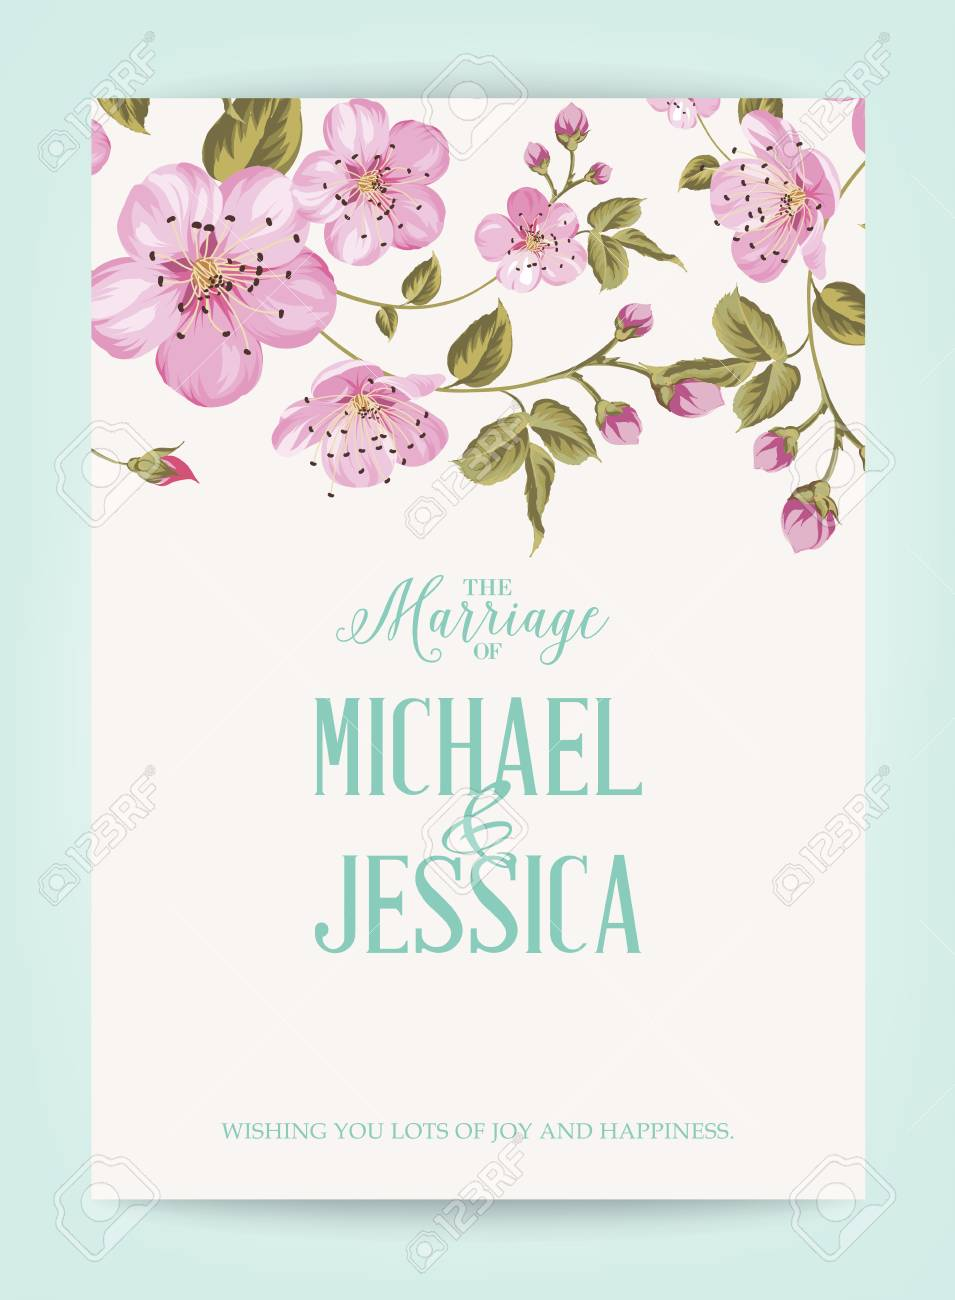 Marriage Invitation Card With Pink Flowers Vintage Wedding Card